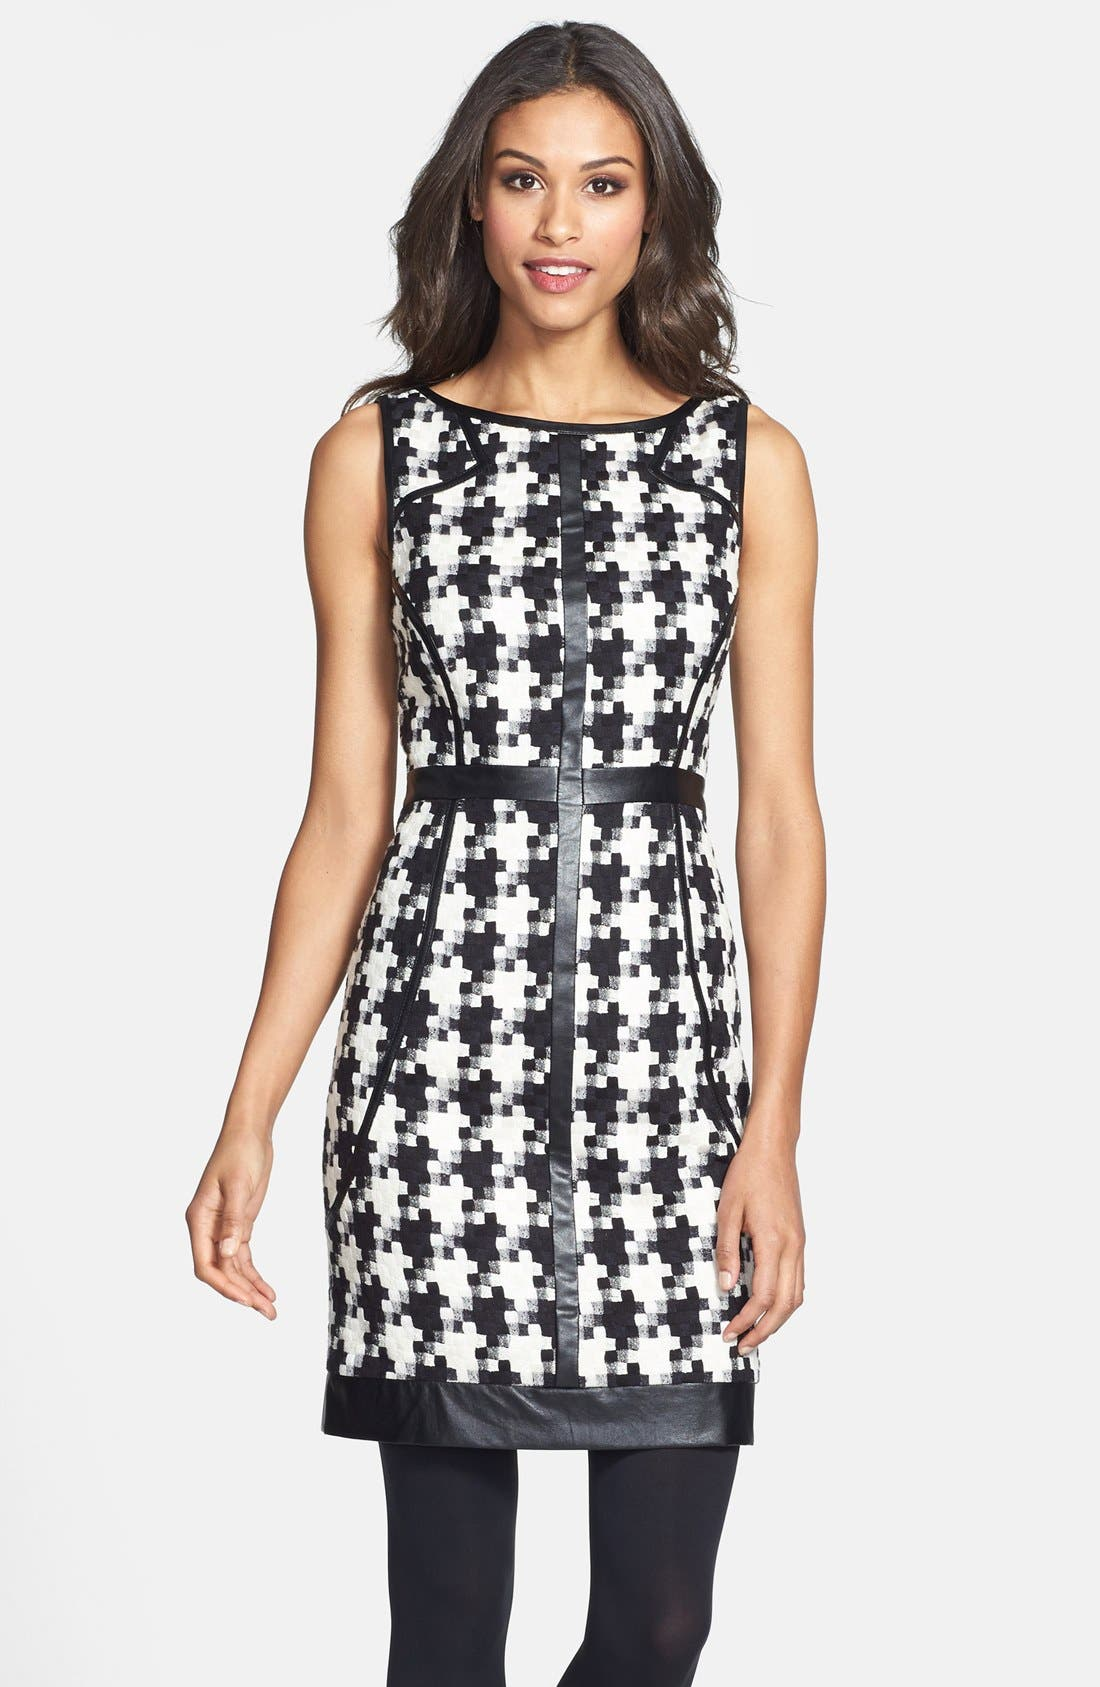 Main Image - Laundry by Shelli Segal Faux Leather Trim Houndstooth Sheath Dress